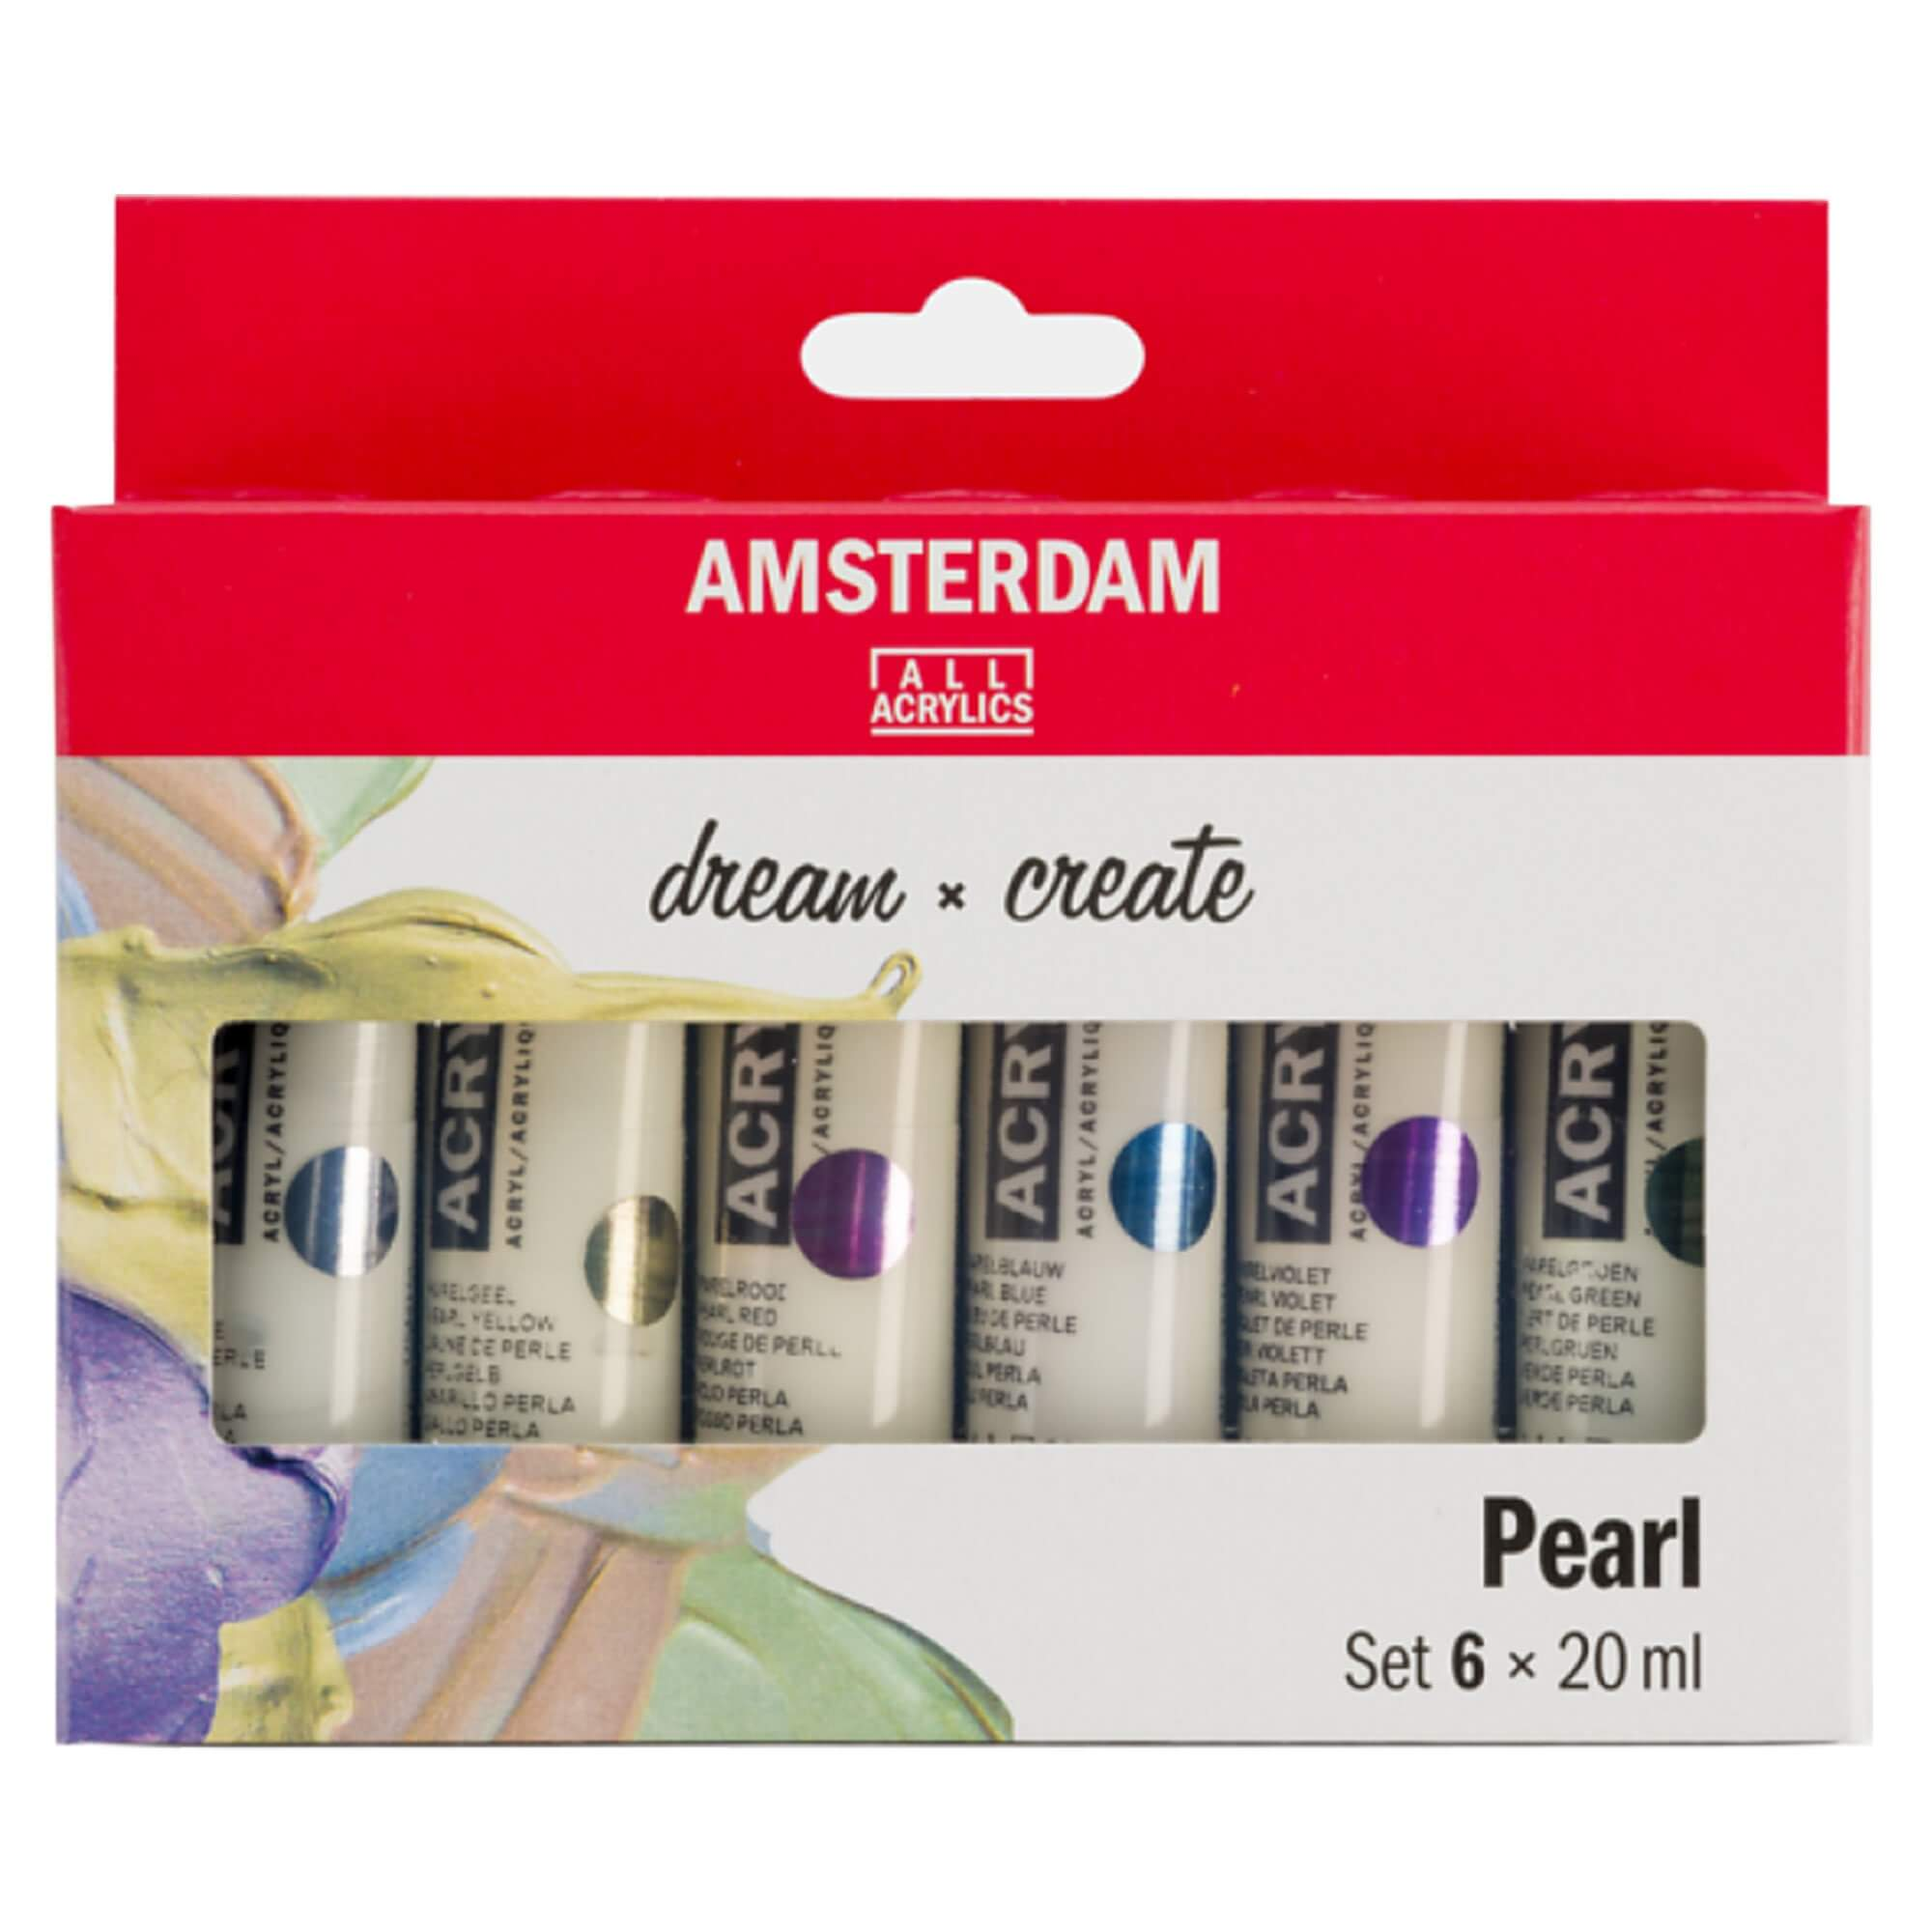 Amsterdam Acrylic Paint Pearl Colours Set 6 x 20ml